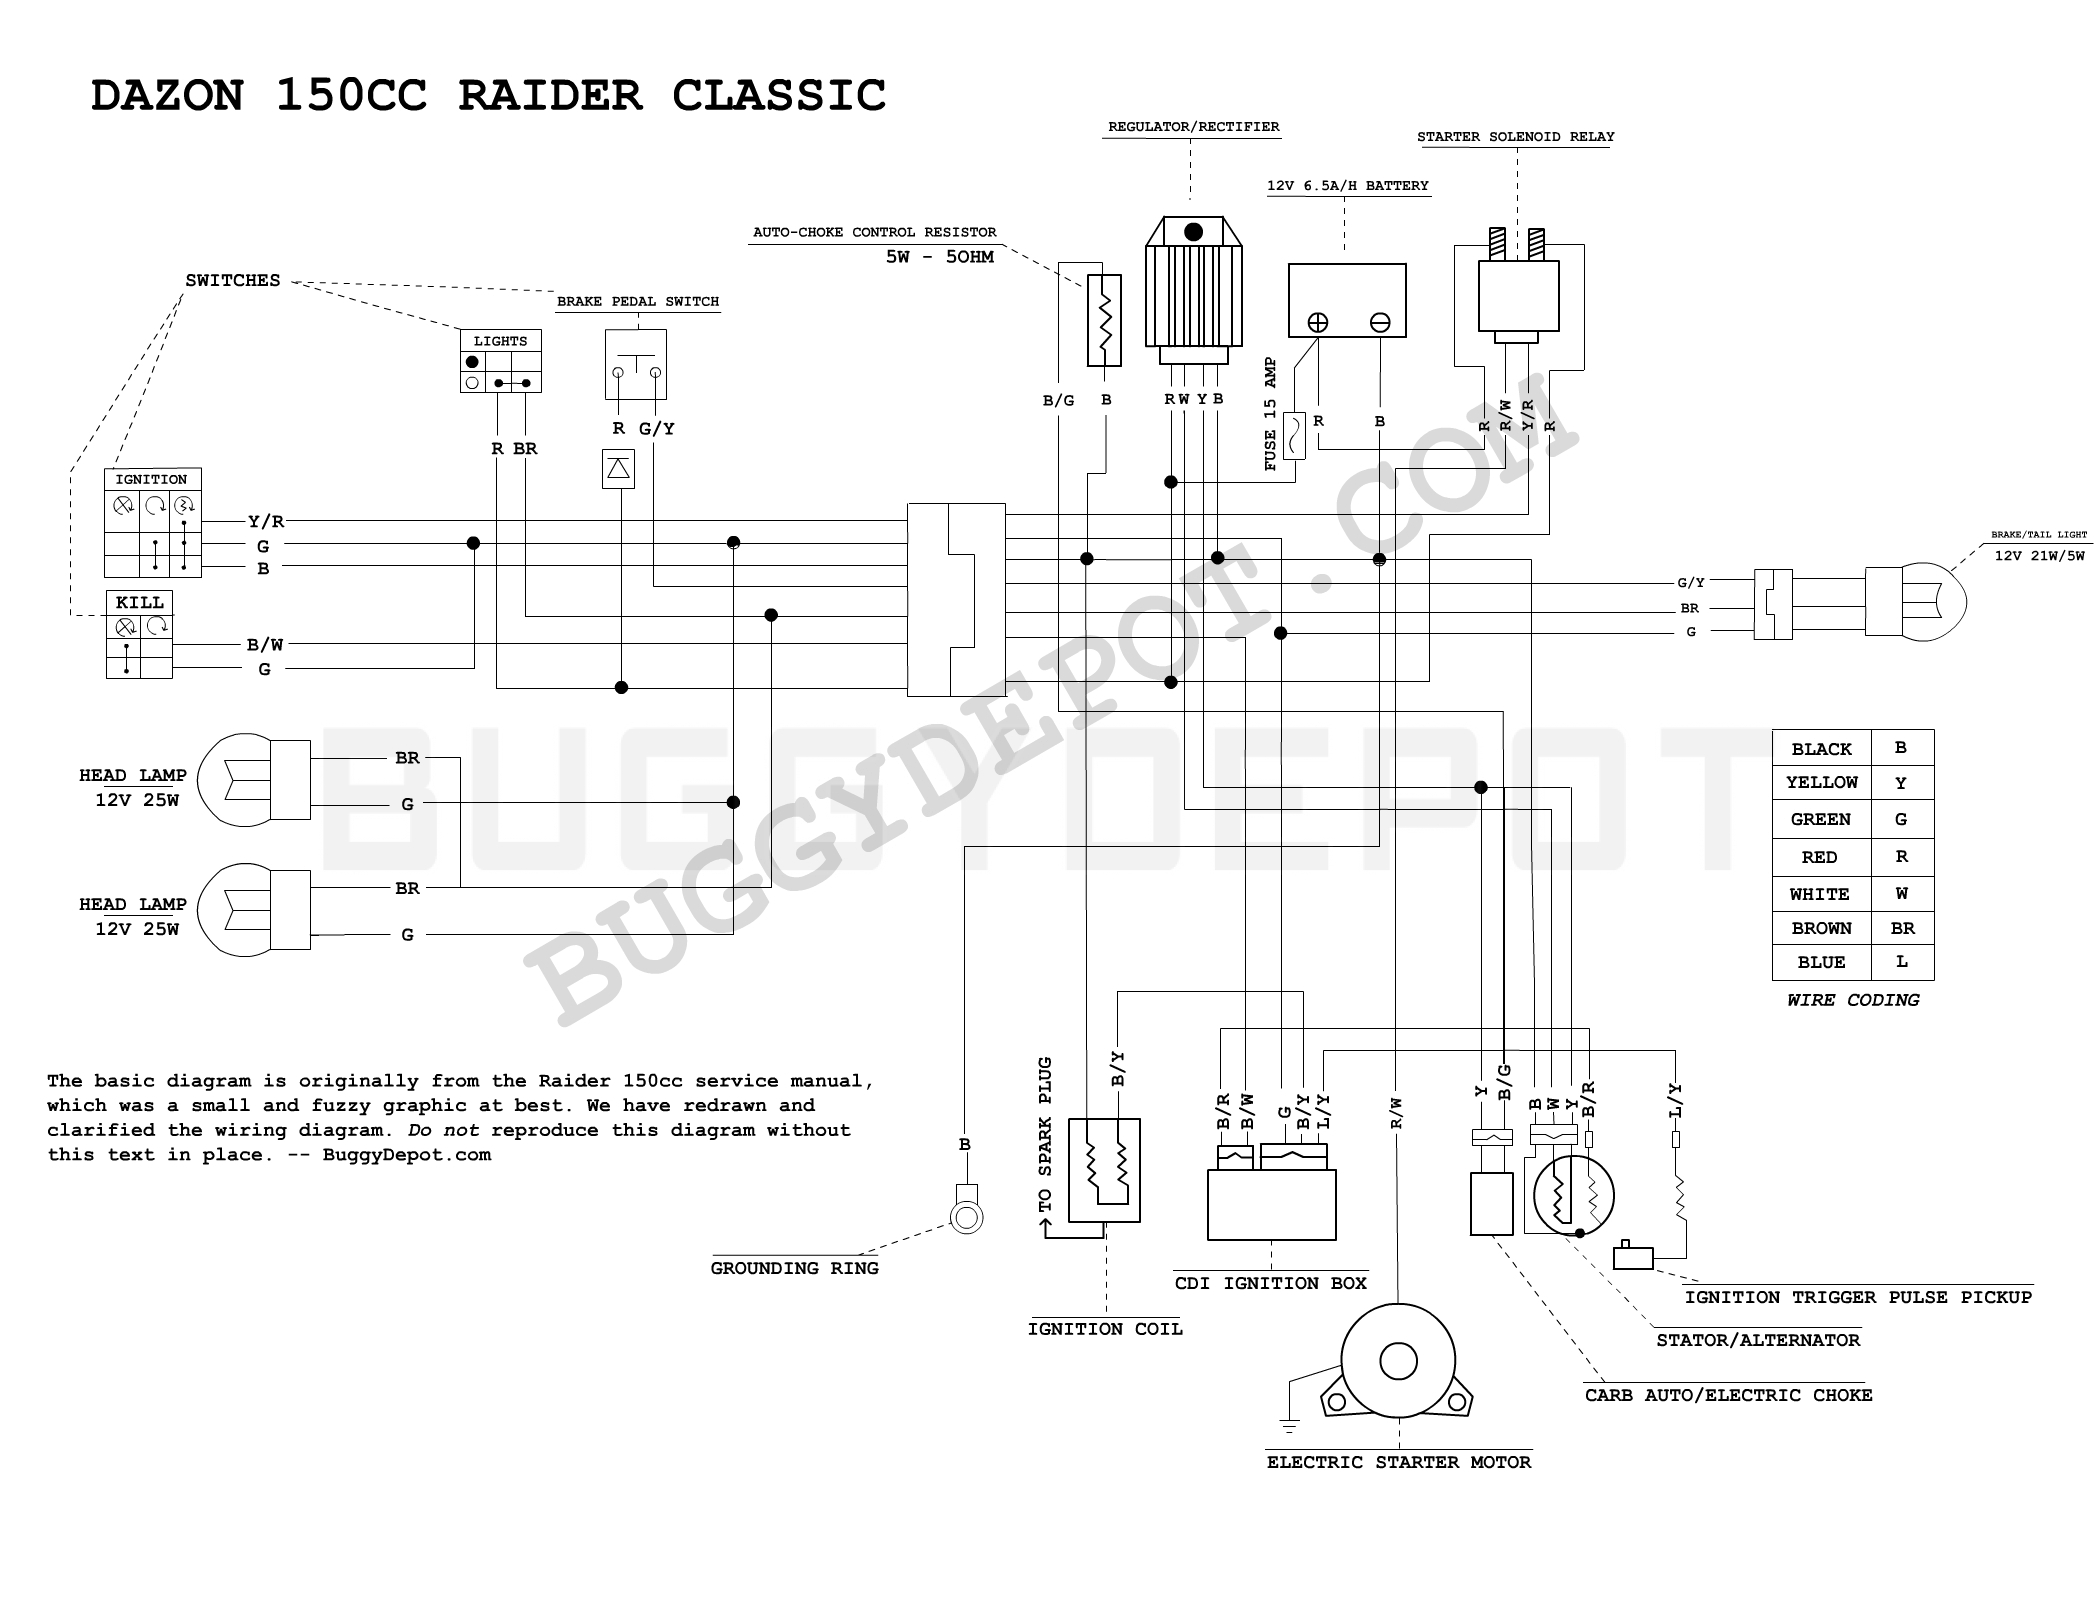 article_33_1278205207 crossfire 150r wiring diagram buggy depot technical center maxxam 150 2r wiring harness at gsmportal.co